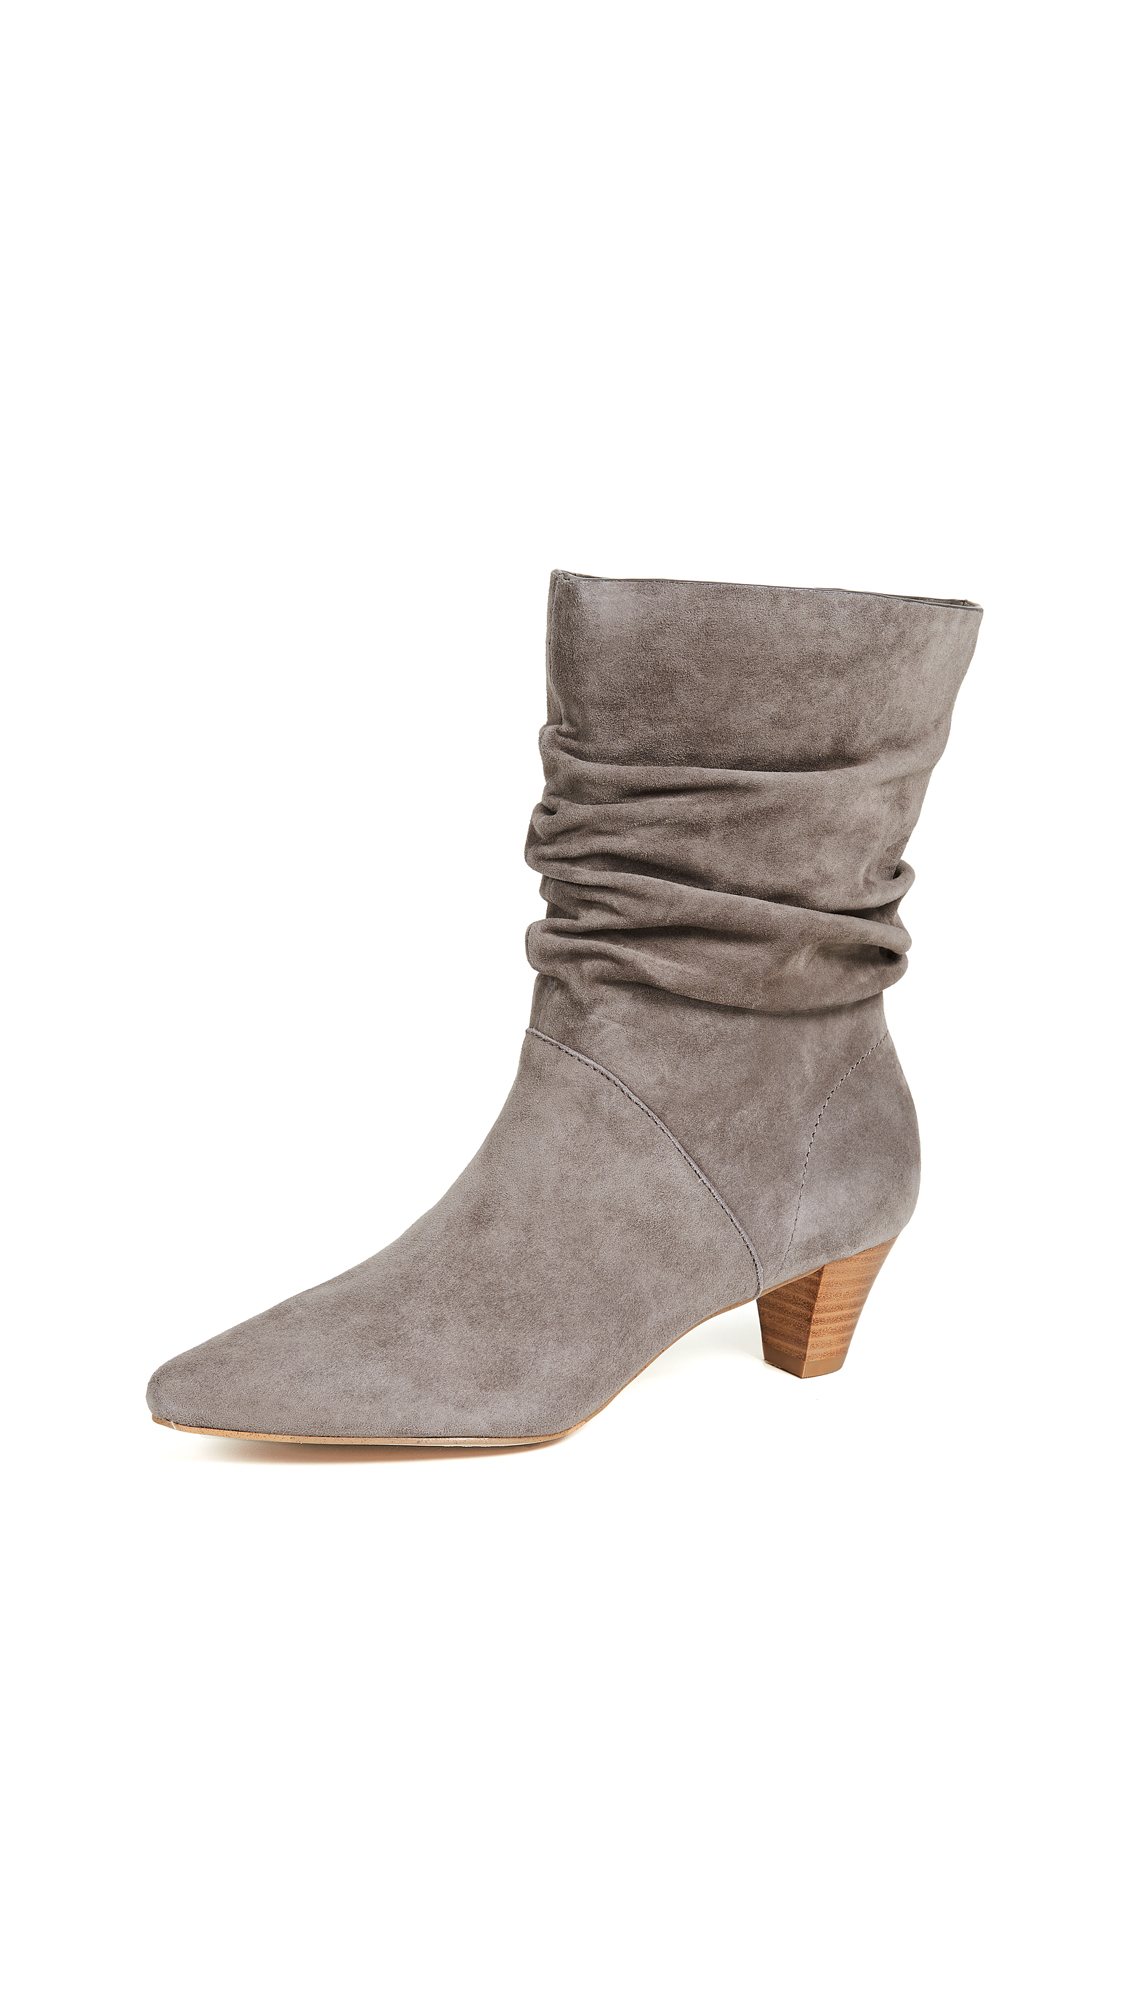 Splendid Nica Scrunchy Boots - Light Charcoal